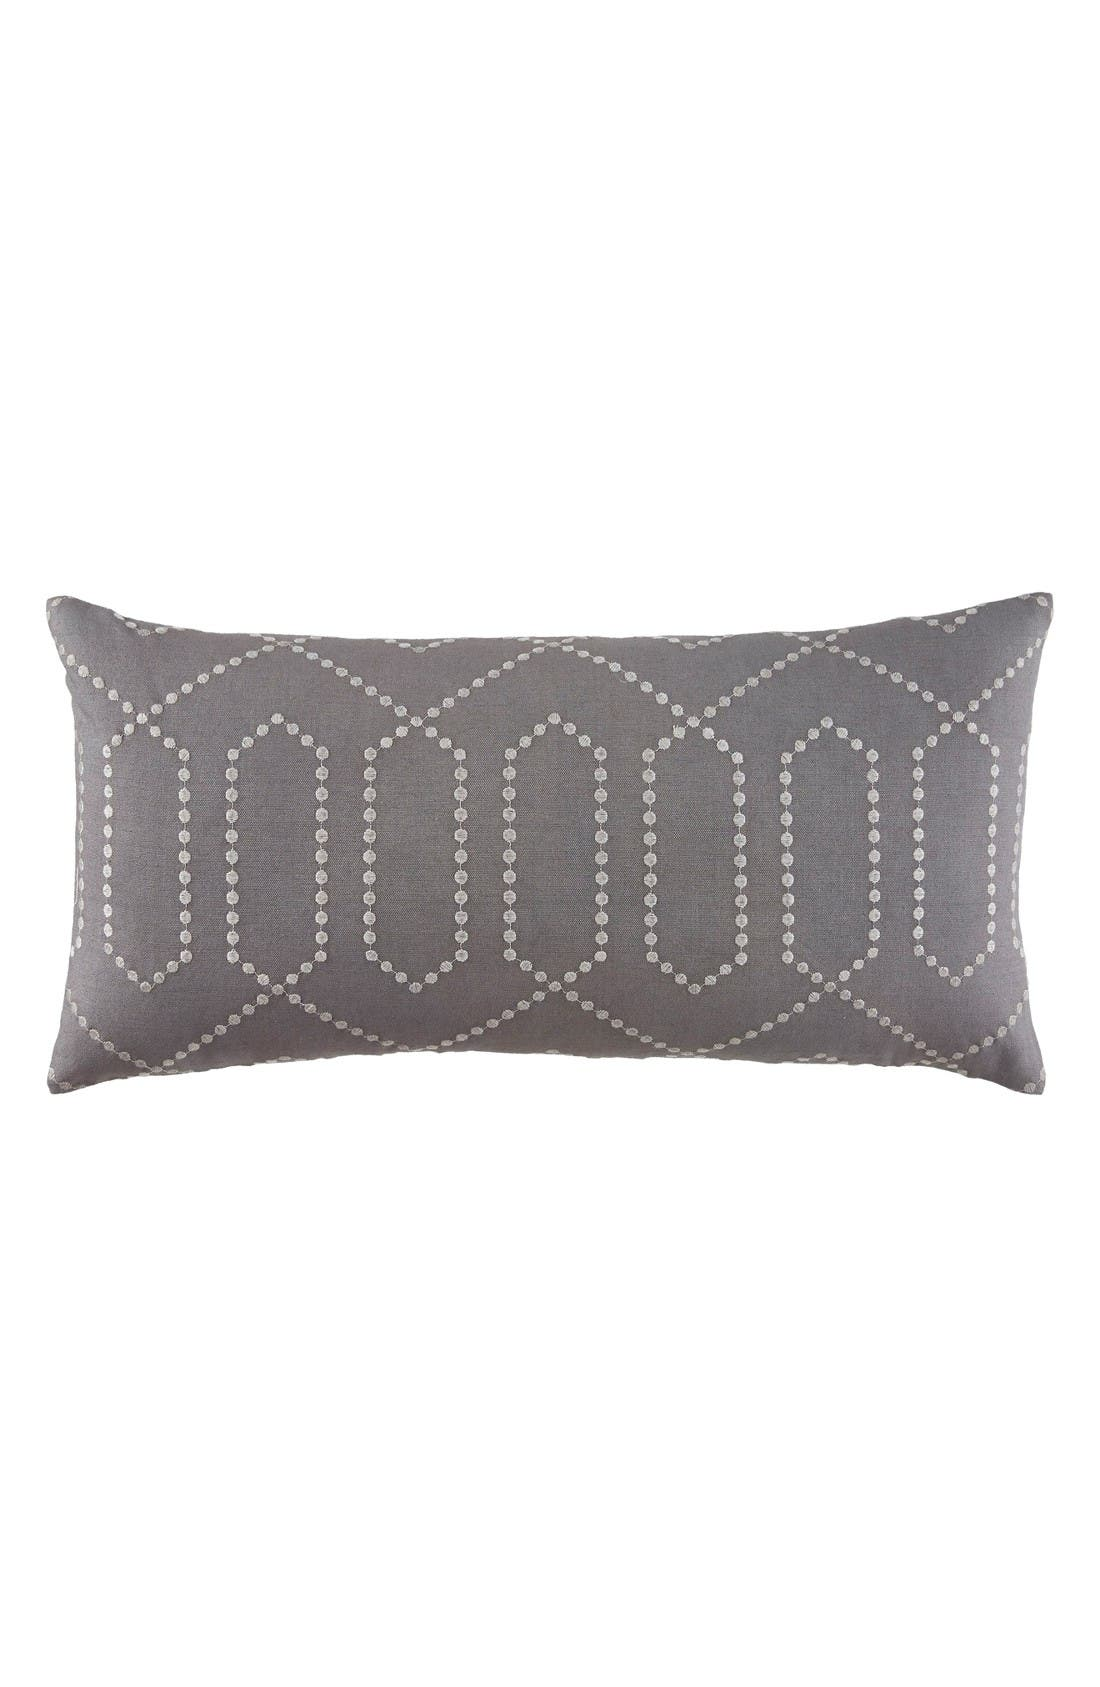 DWELLSTUDIO Decor Trellis Accent Pillow